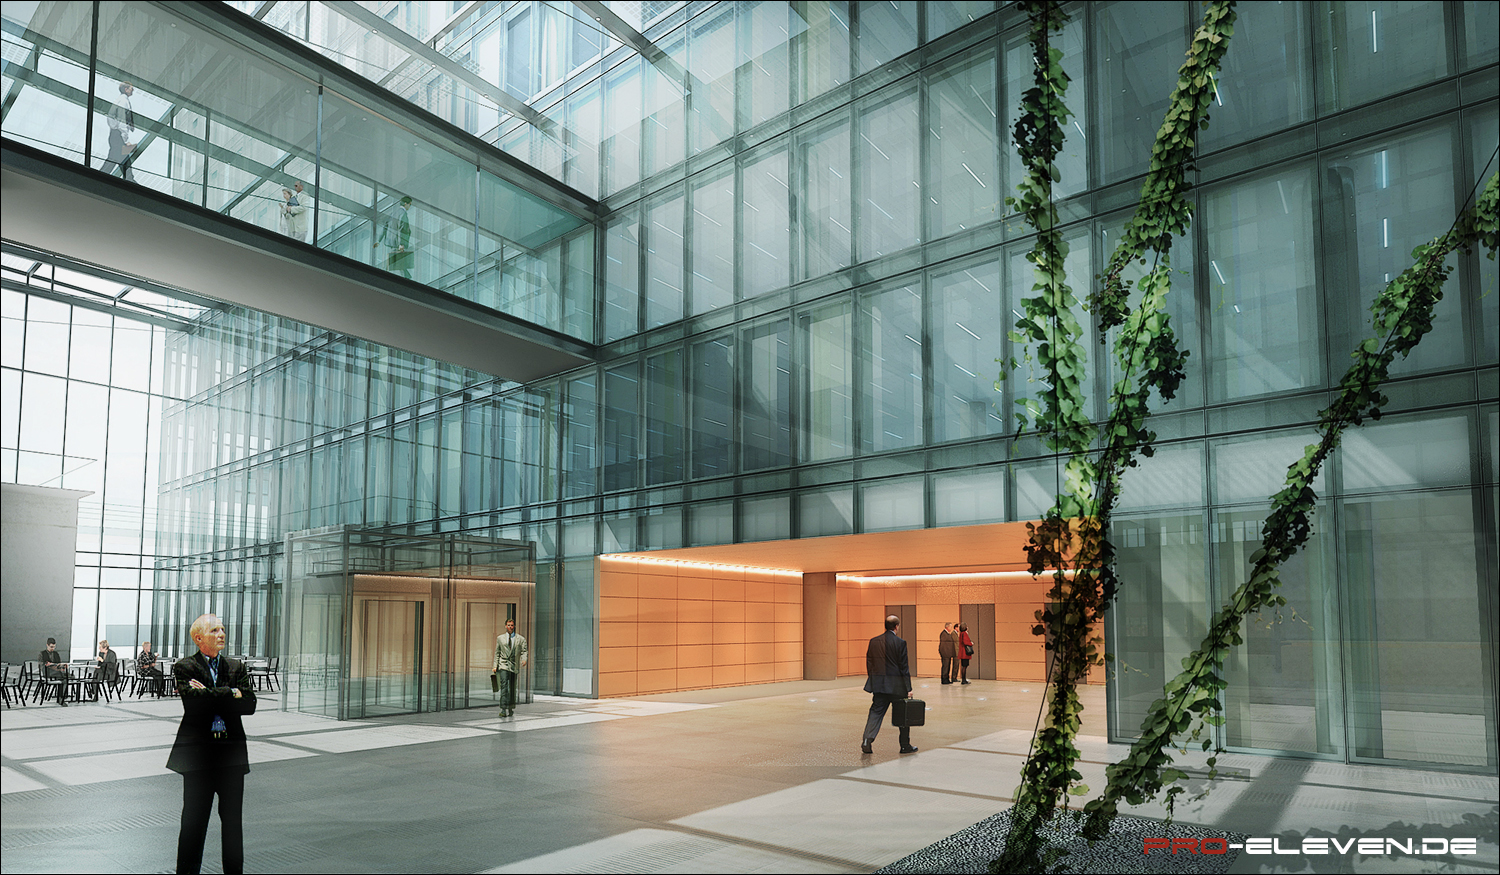 Architektur Rendering Wien Projekte Innenraum Office Center Rivergate Wien Pro